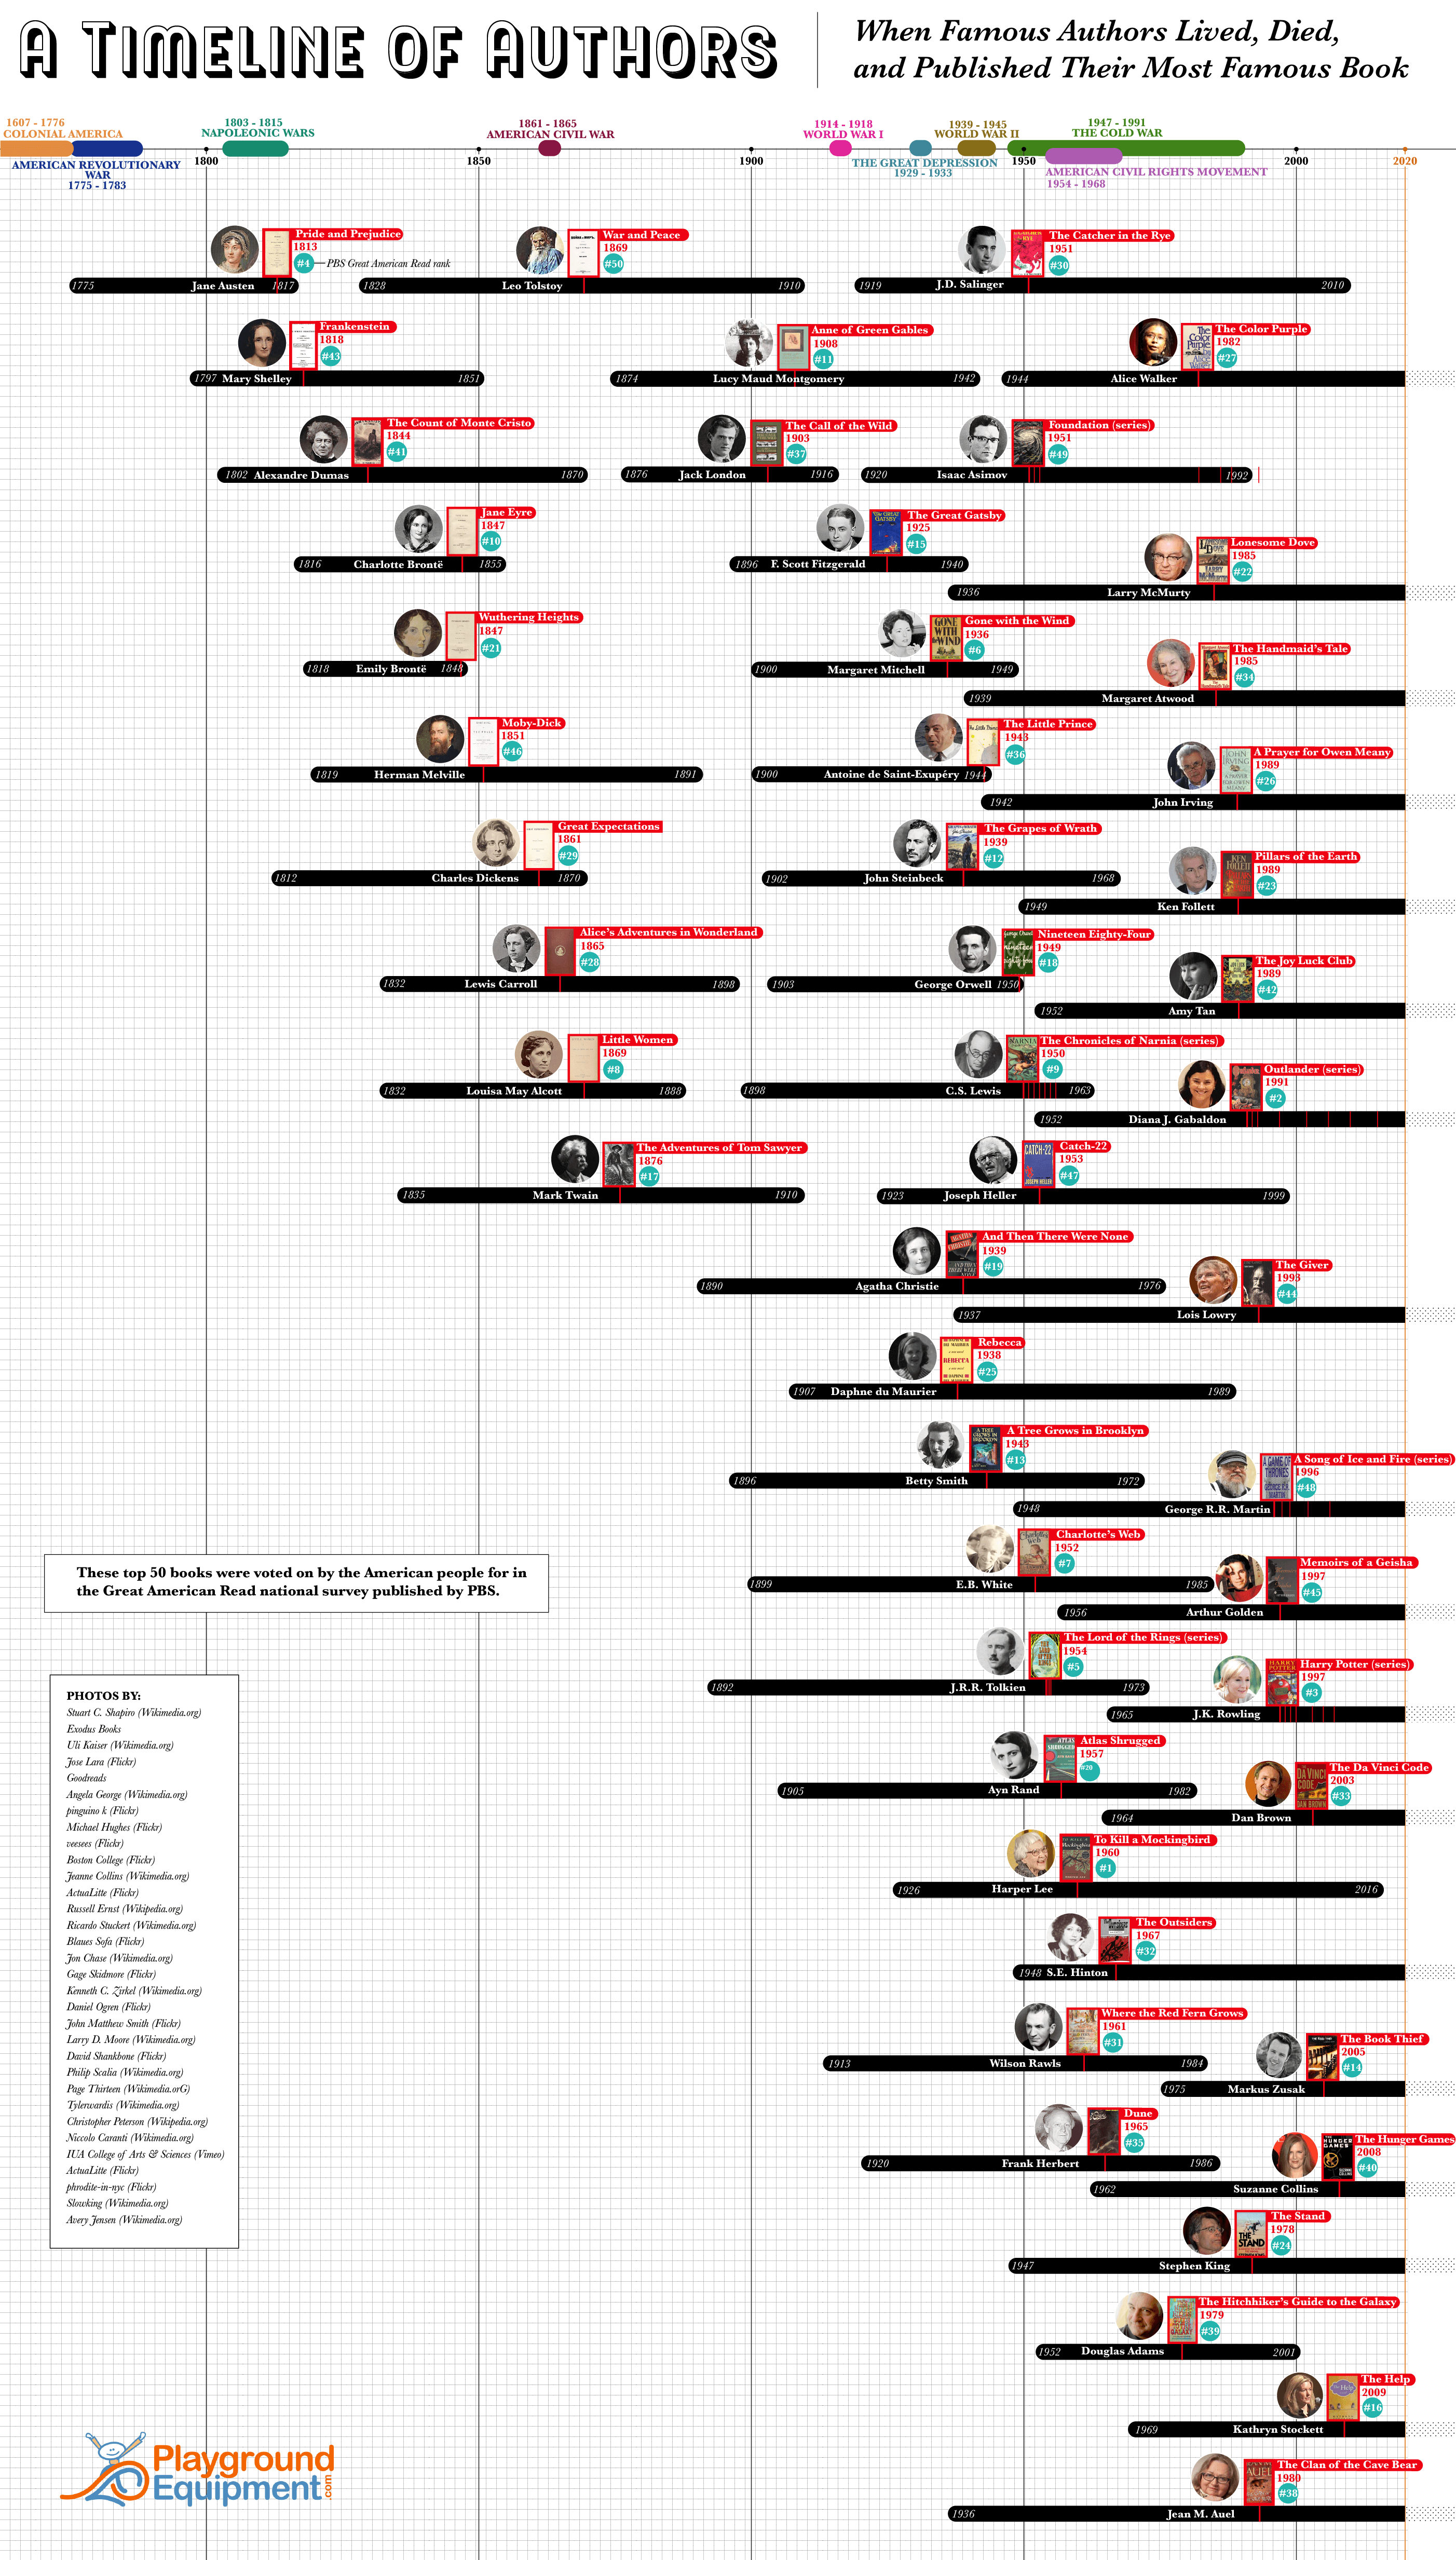 A timeline of famous authors - full infographic